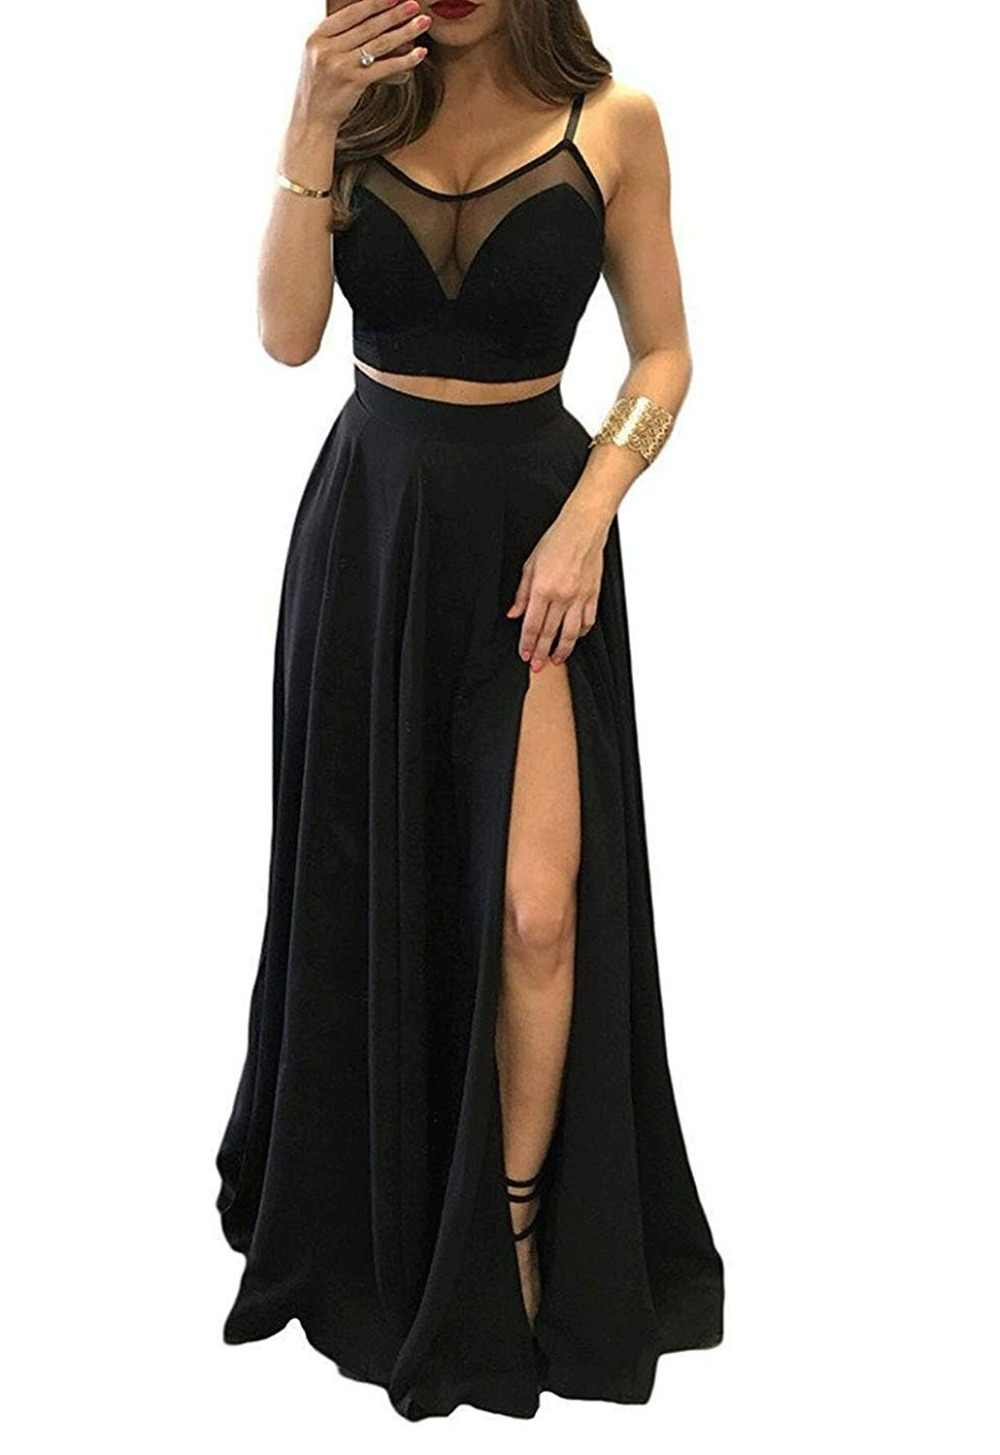 Modest Two Piece Black Bridesmaid Dresses Spaghetti A Line Floor Length Maid of Honor Prom Party Gowns Vestidos de Fiesta Cheap